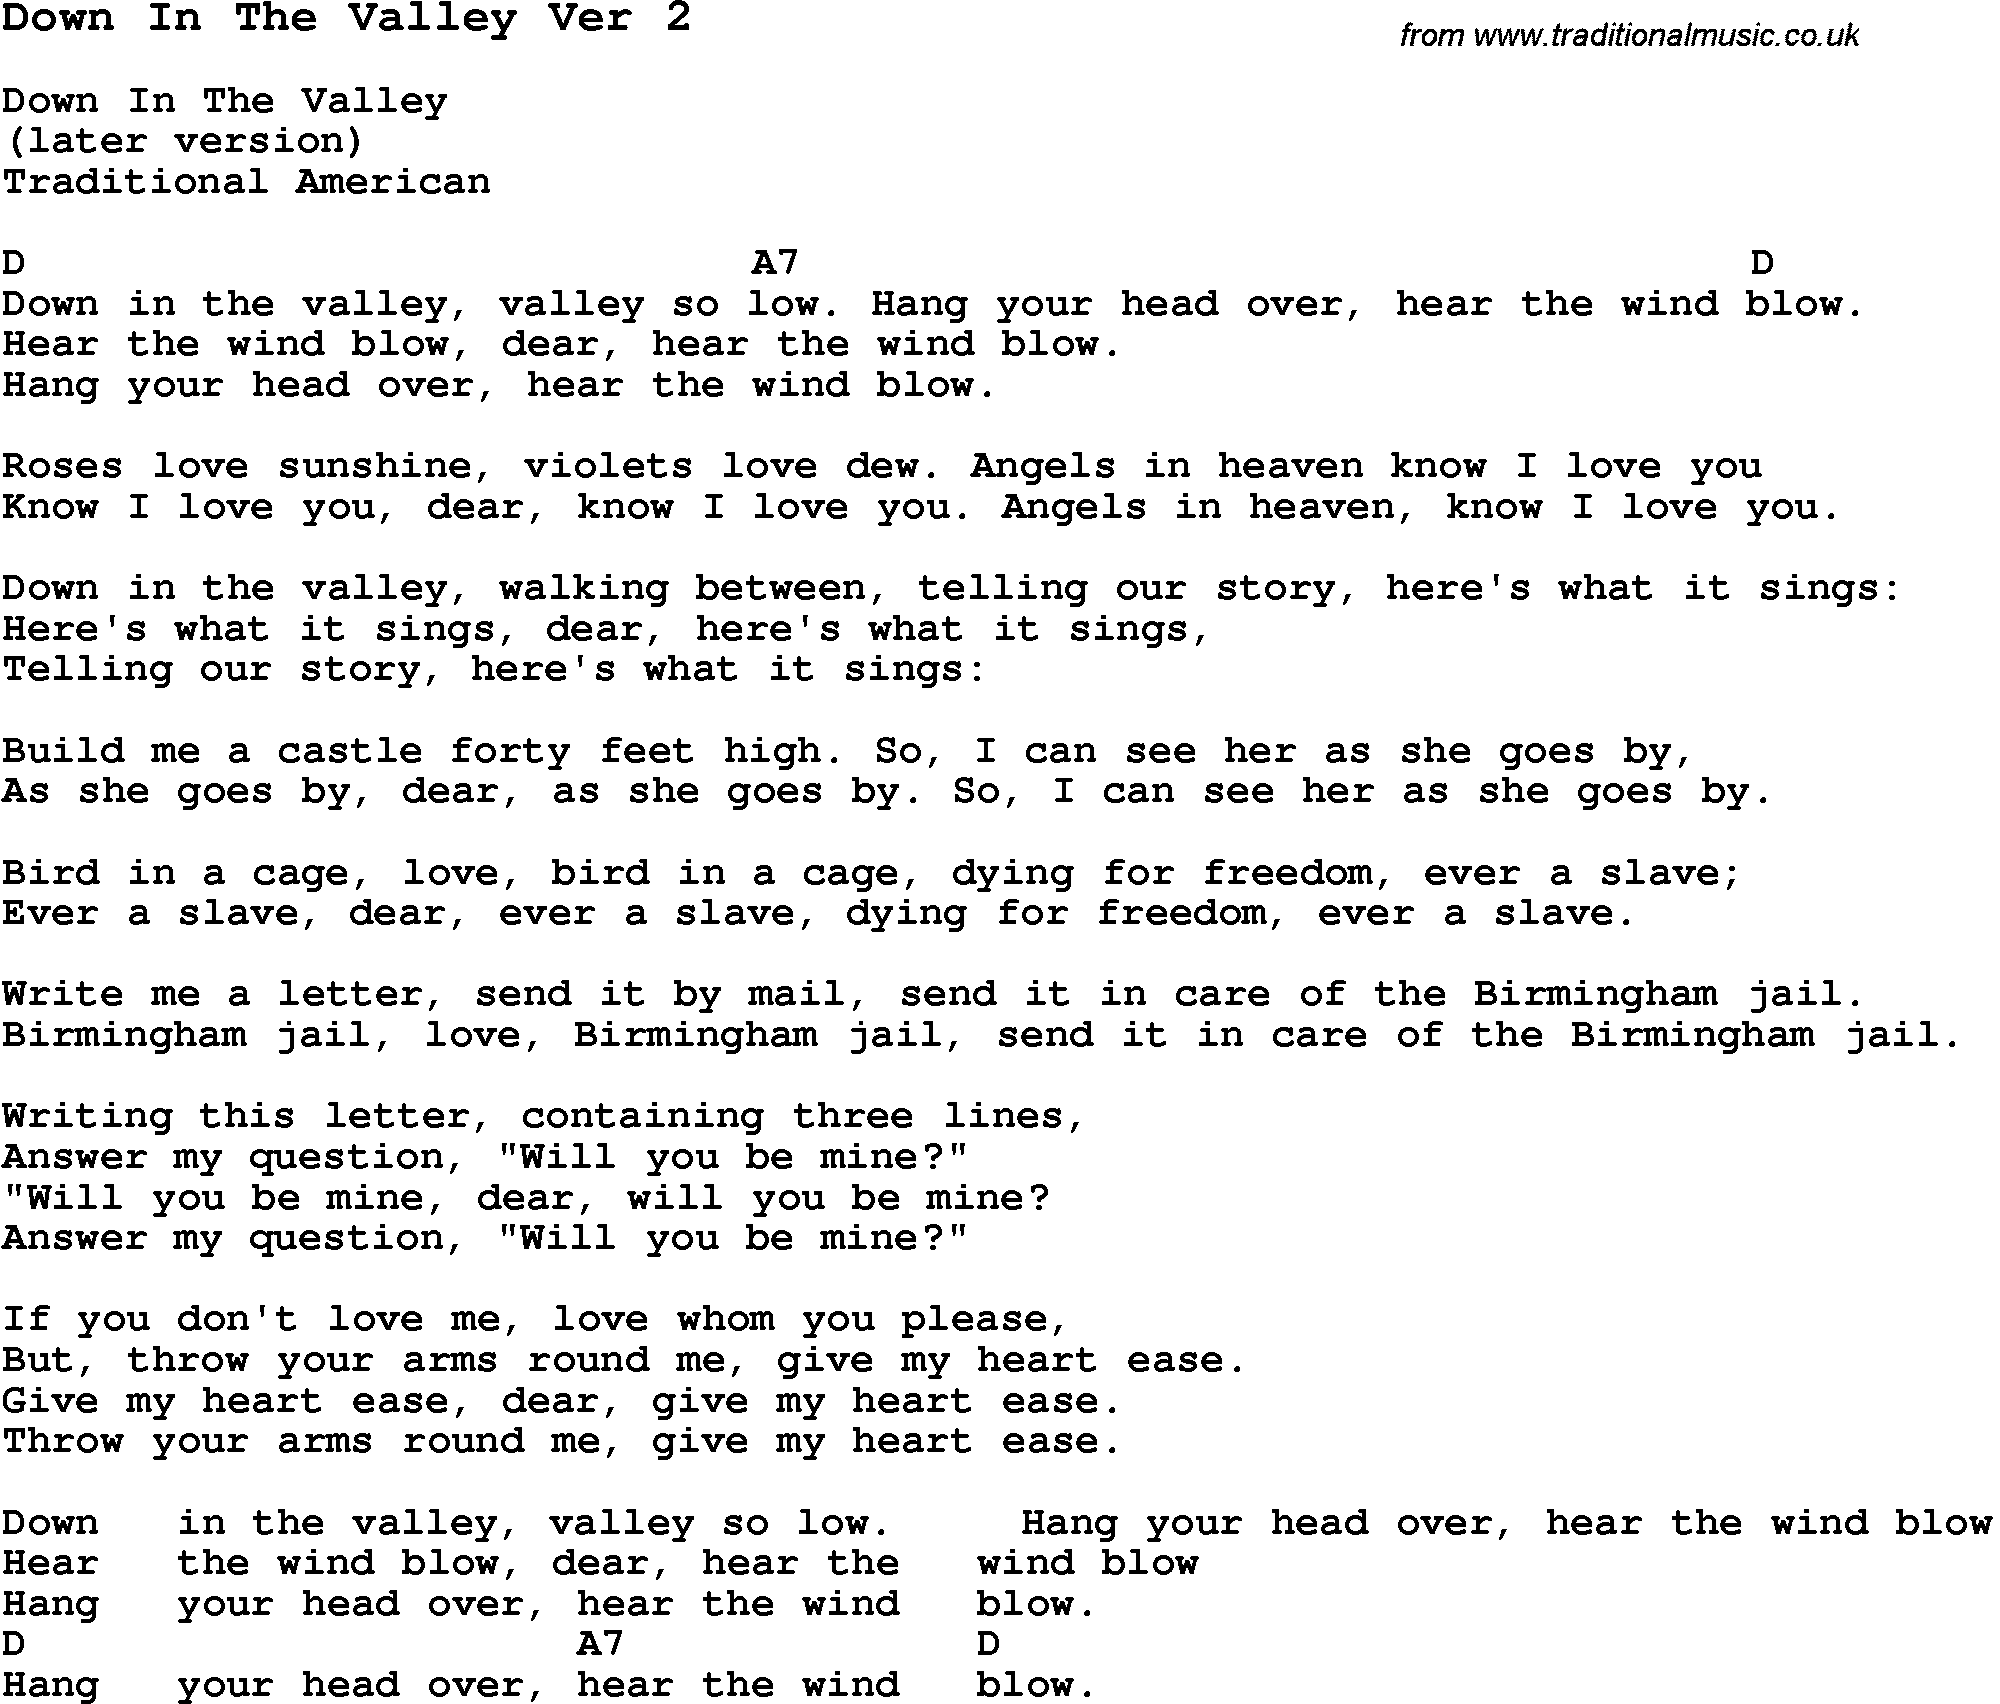 Traditional Song Down In The Valley Ver 15 with Chords, Tabs and Lyrics